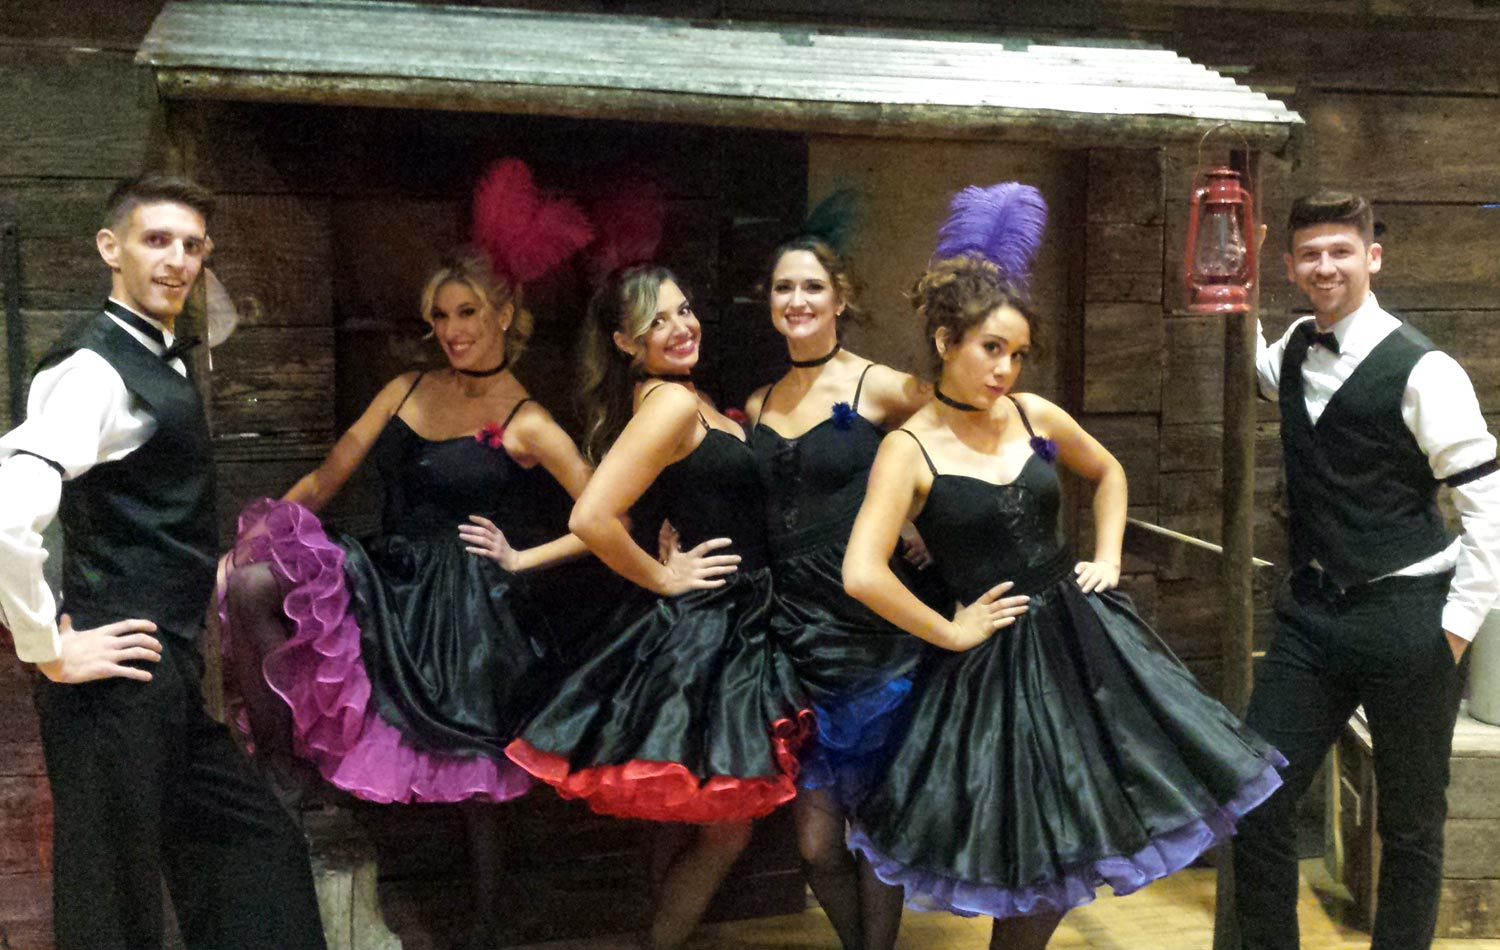 Saloon Girls and Guys for Wild West theme party